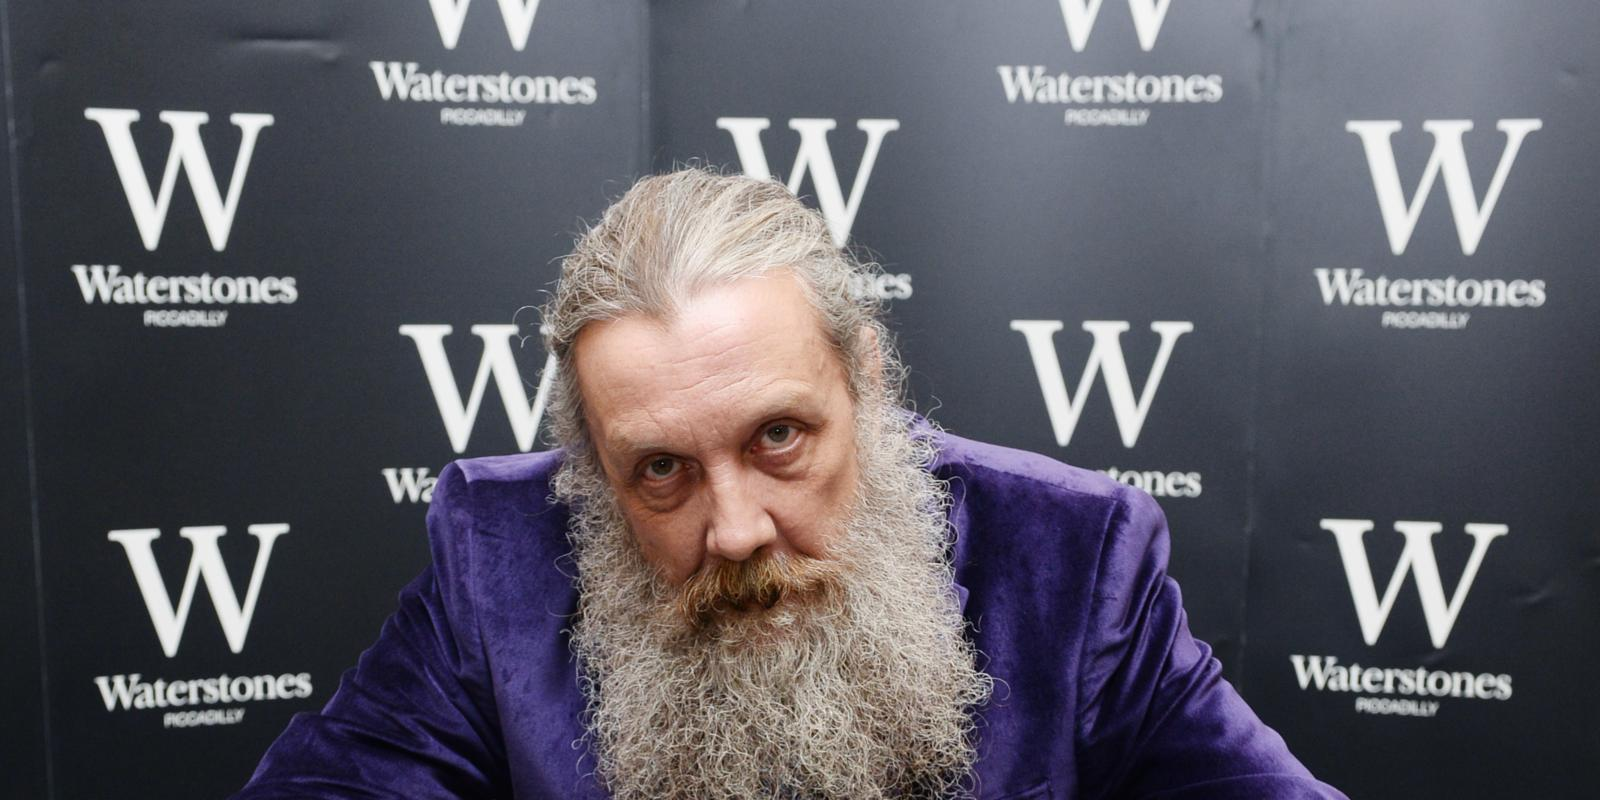 The Honest Alan Moore Interview – Part 3: On Comics, How to Break Into Comics, and Modern Culture